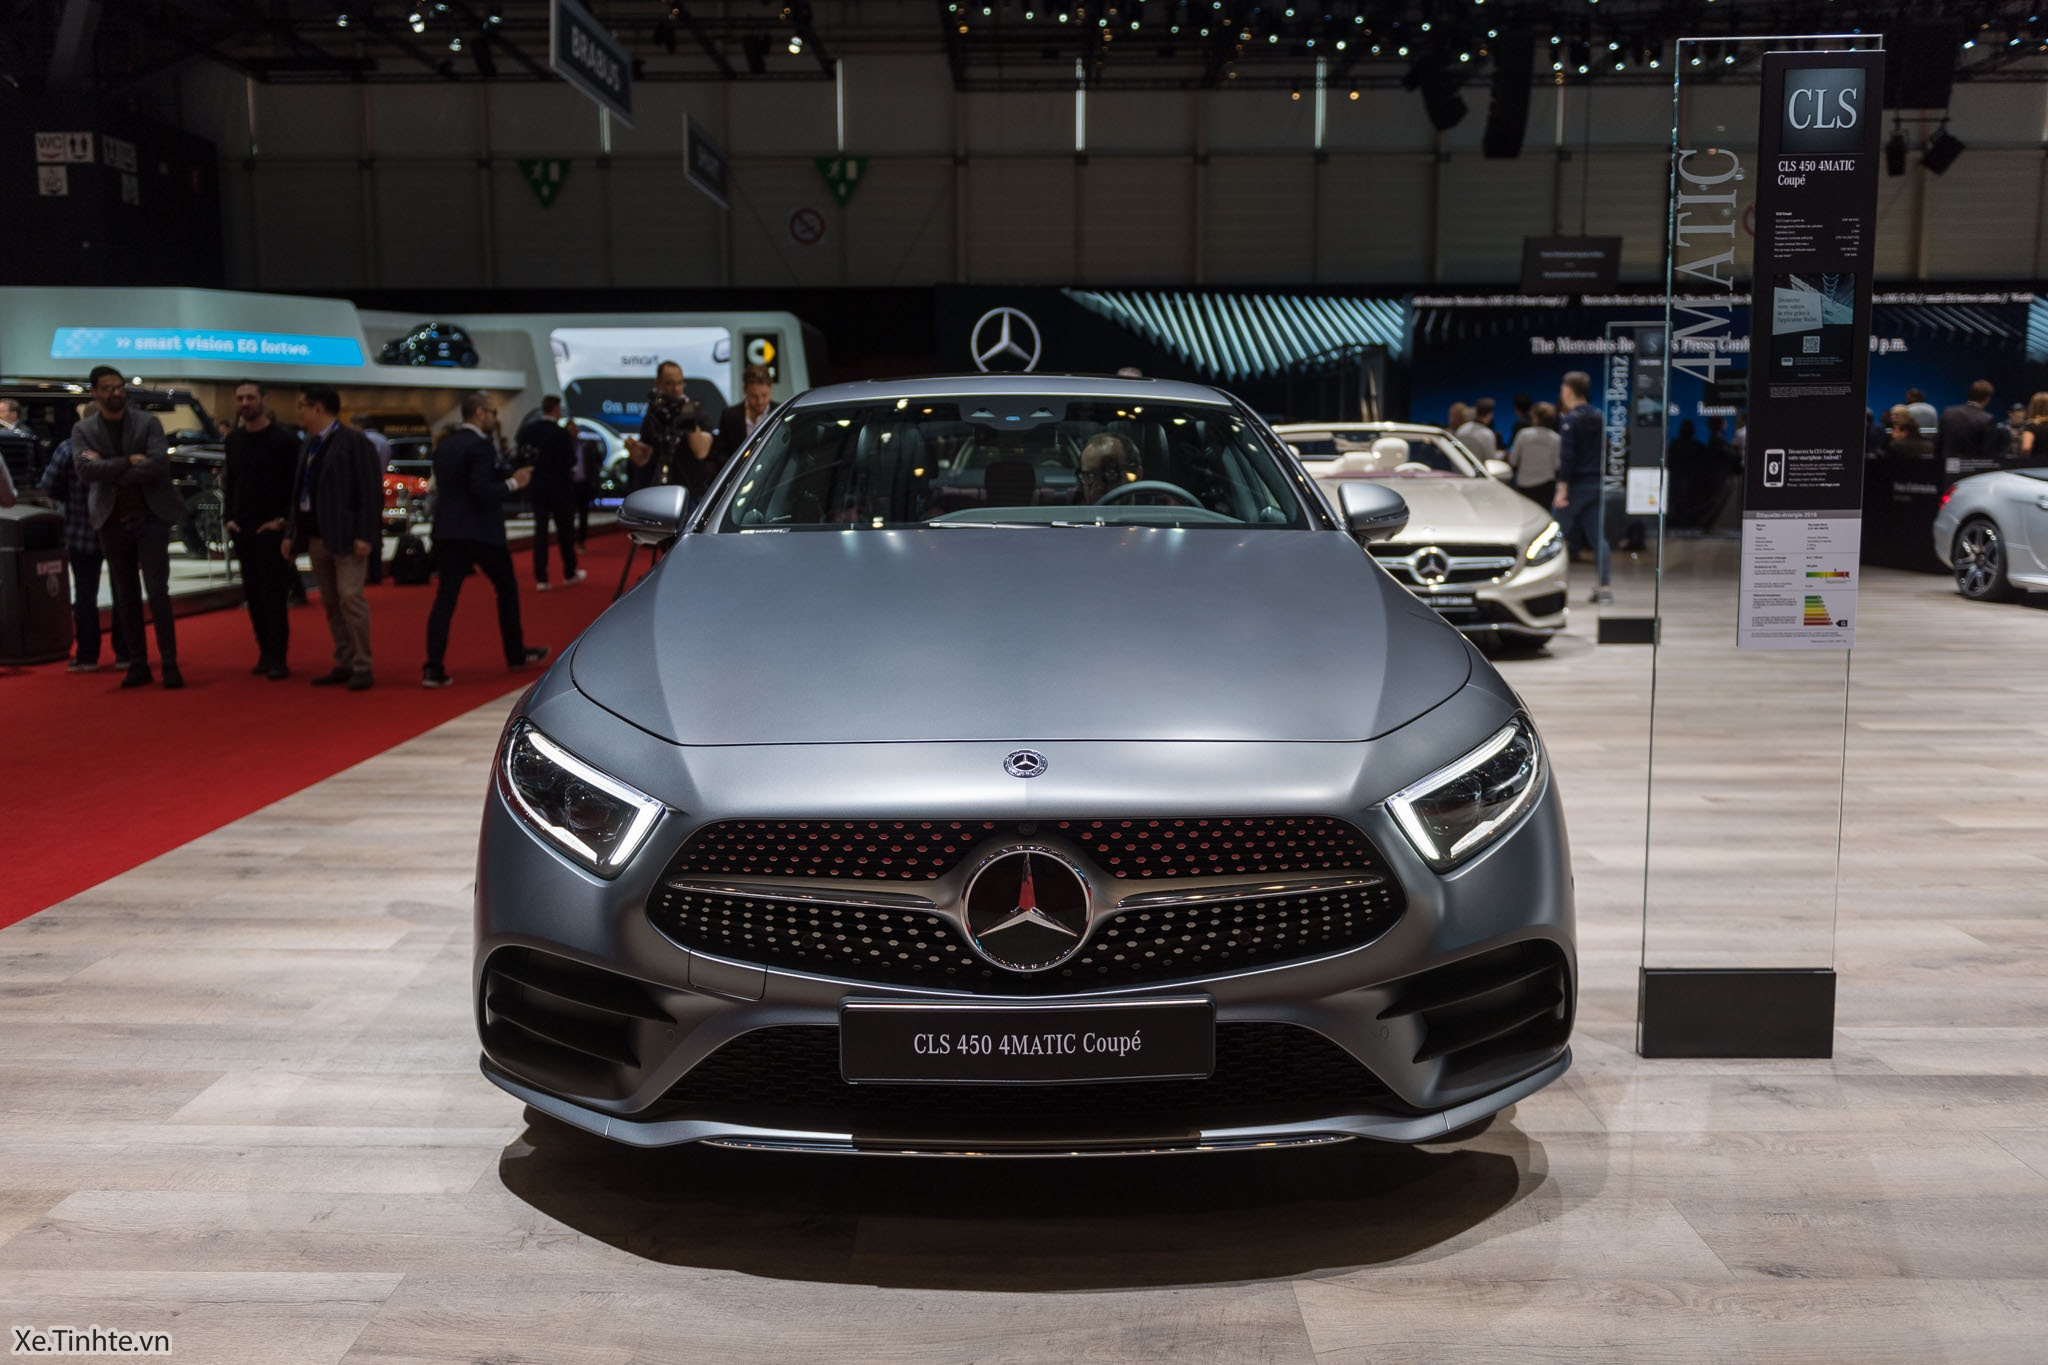 Mercedes_CLS_450_4MATIC_Coupe_Xe_Tinhte-004.jpg